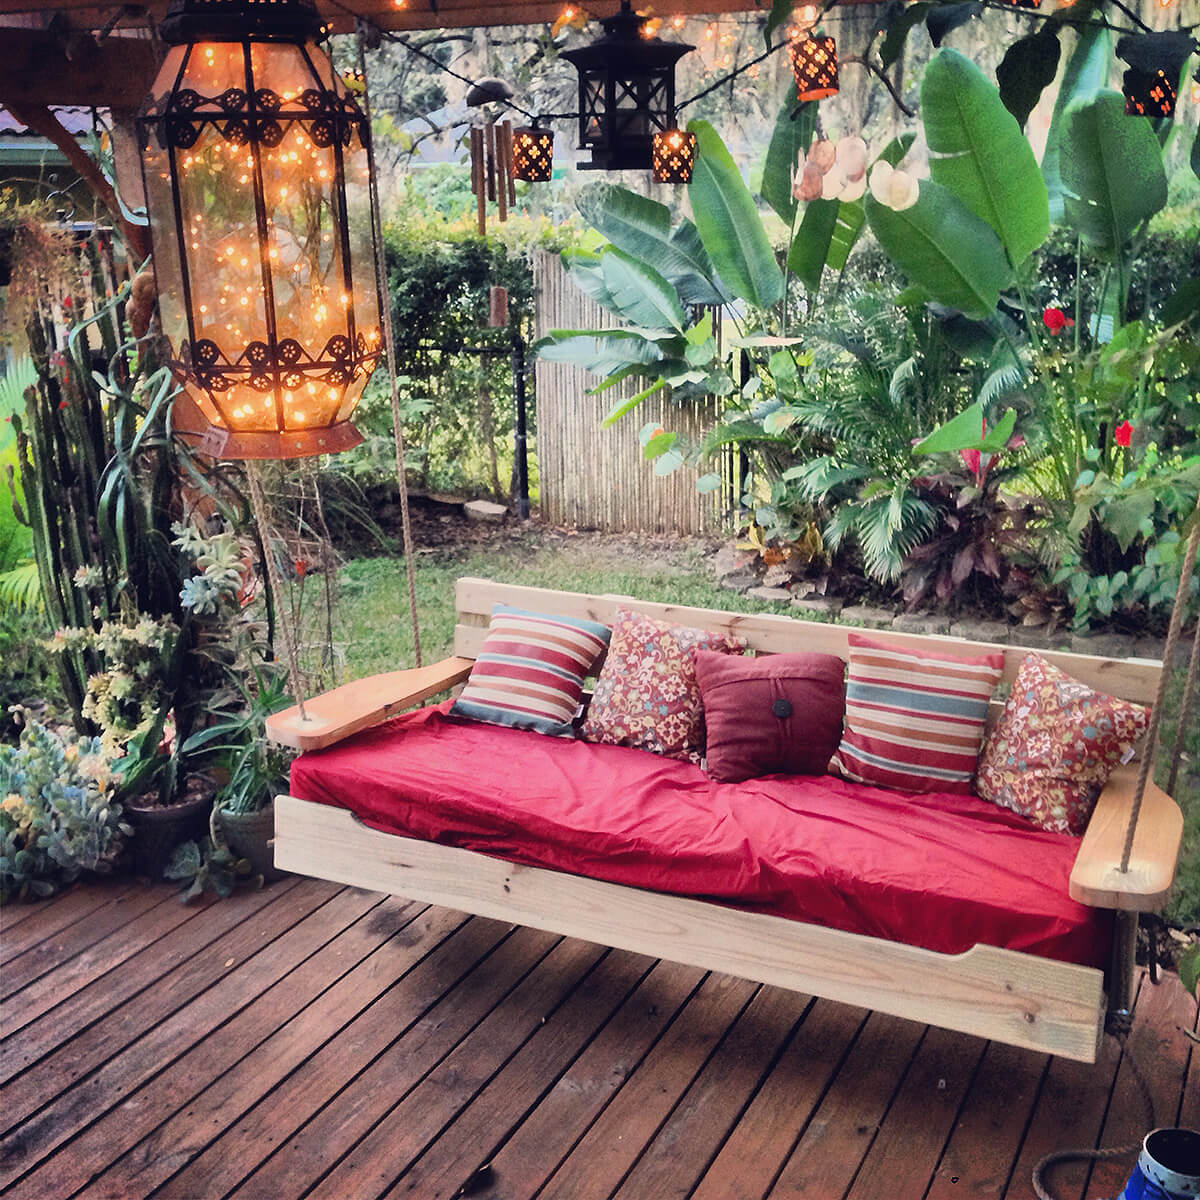 Hanging Bench One Day Backyard Project Ideas